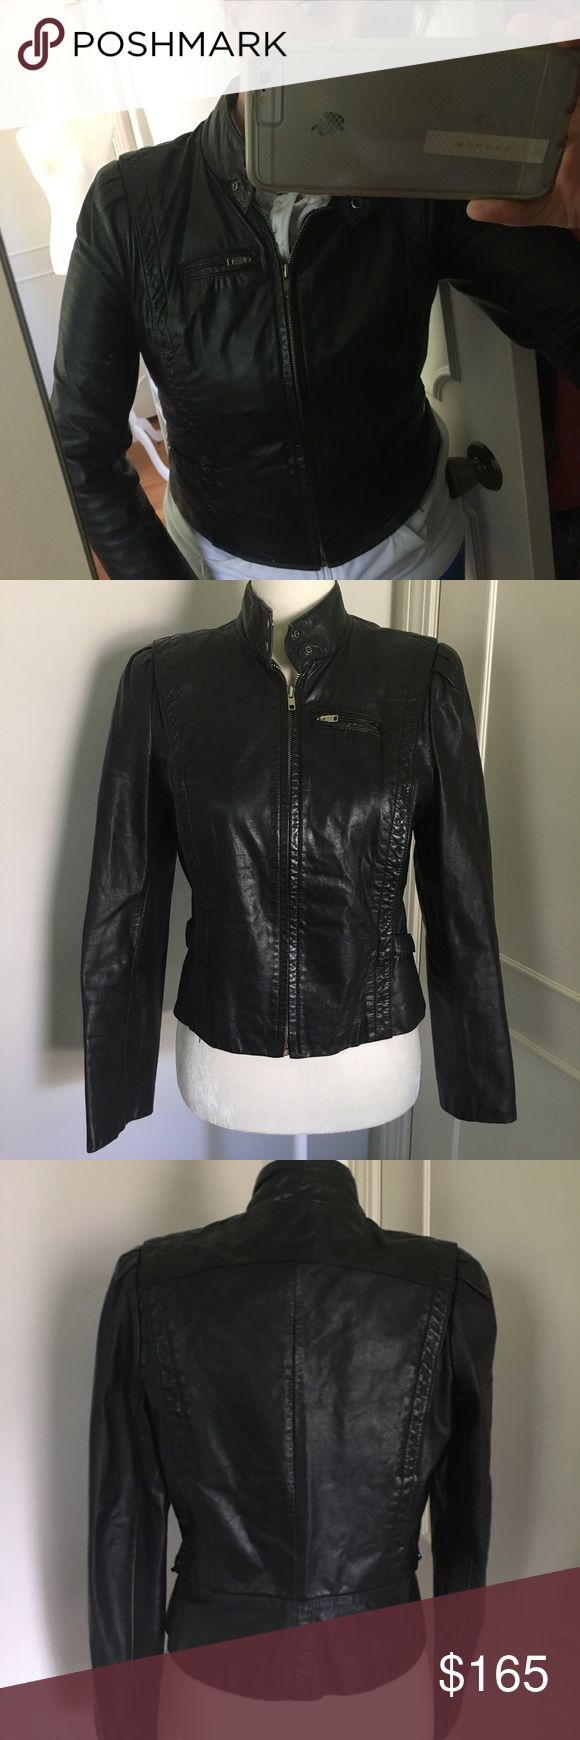 Vintage 80's cafe racer leather jacket Vintage 1980's tight fitted genuine leather cafe racer jacket. So Joan Jett!! Has adjustable sides and puffy shoulders. Vintage condition is good but shows wear. Fully lined. Fits small- medium. Also, I used to wear this going out in the 90's so it faintly smells like smoke. It's been 20 years, so it's not that bad, but just want full disclosure. Otherwise this is a non-smoking household. :) would look great paired with ankle boots or a pair of…